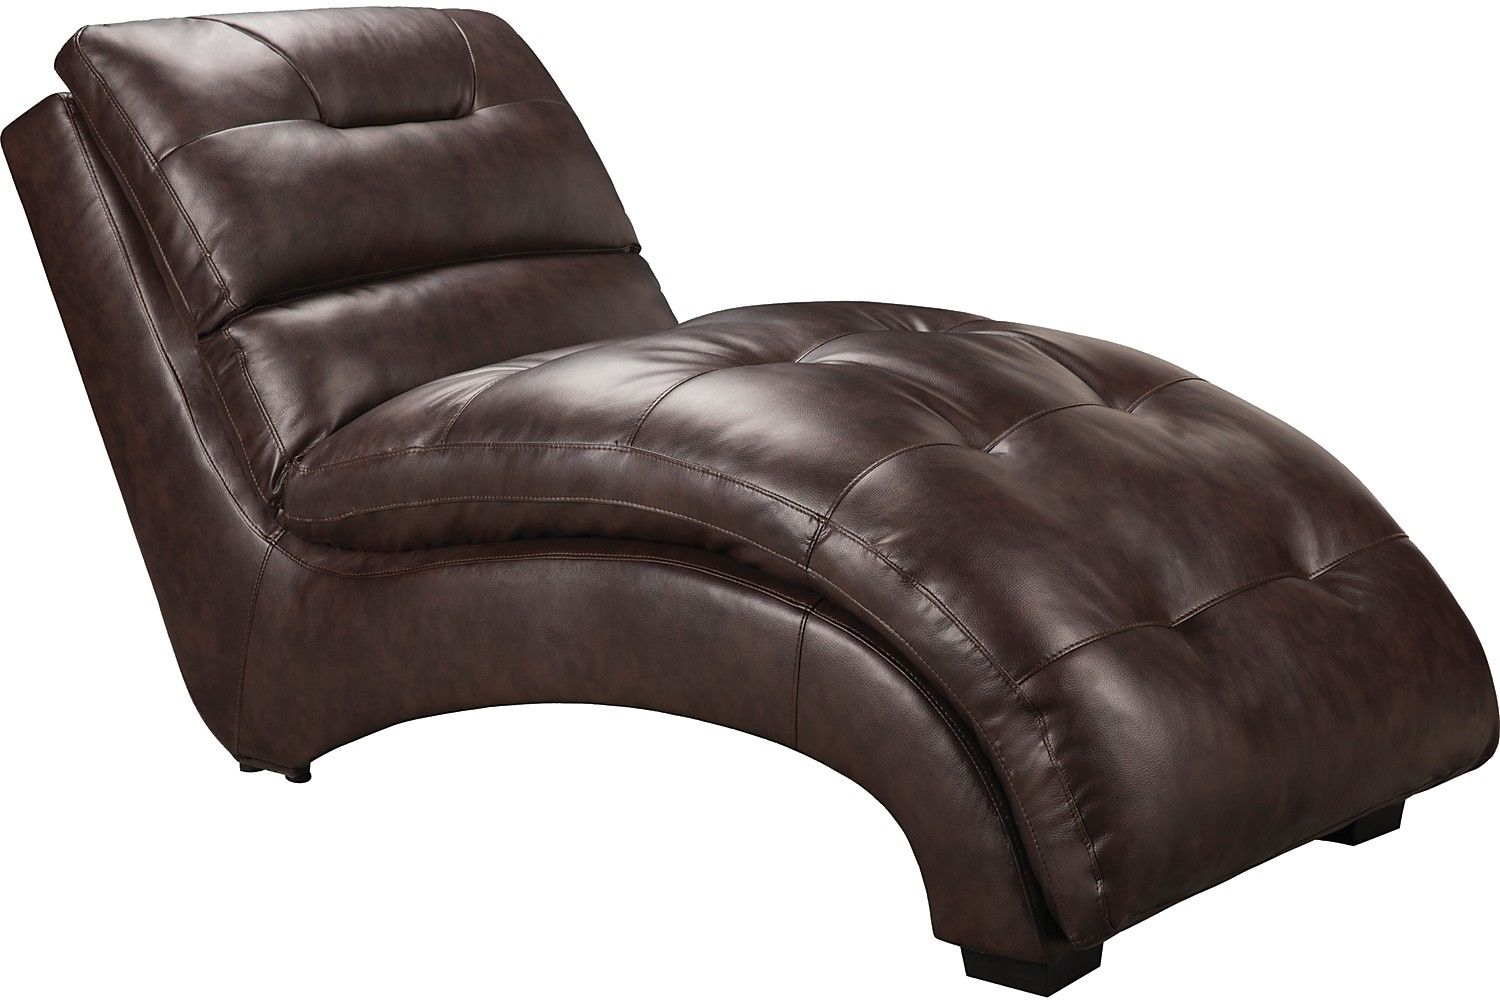 Charlie Faux Leather Curved Chaise - Brown  sc 1 st  Pinterest : faux leather chaise lounge - Sectionals, Sofas & Couches